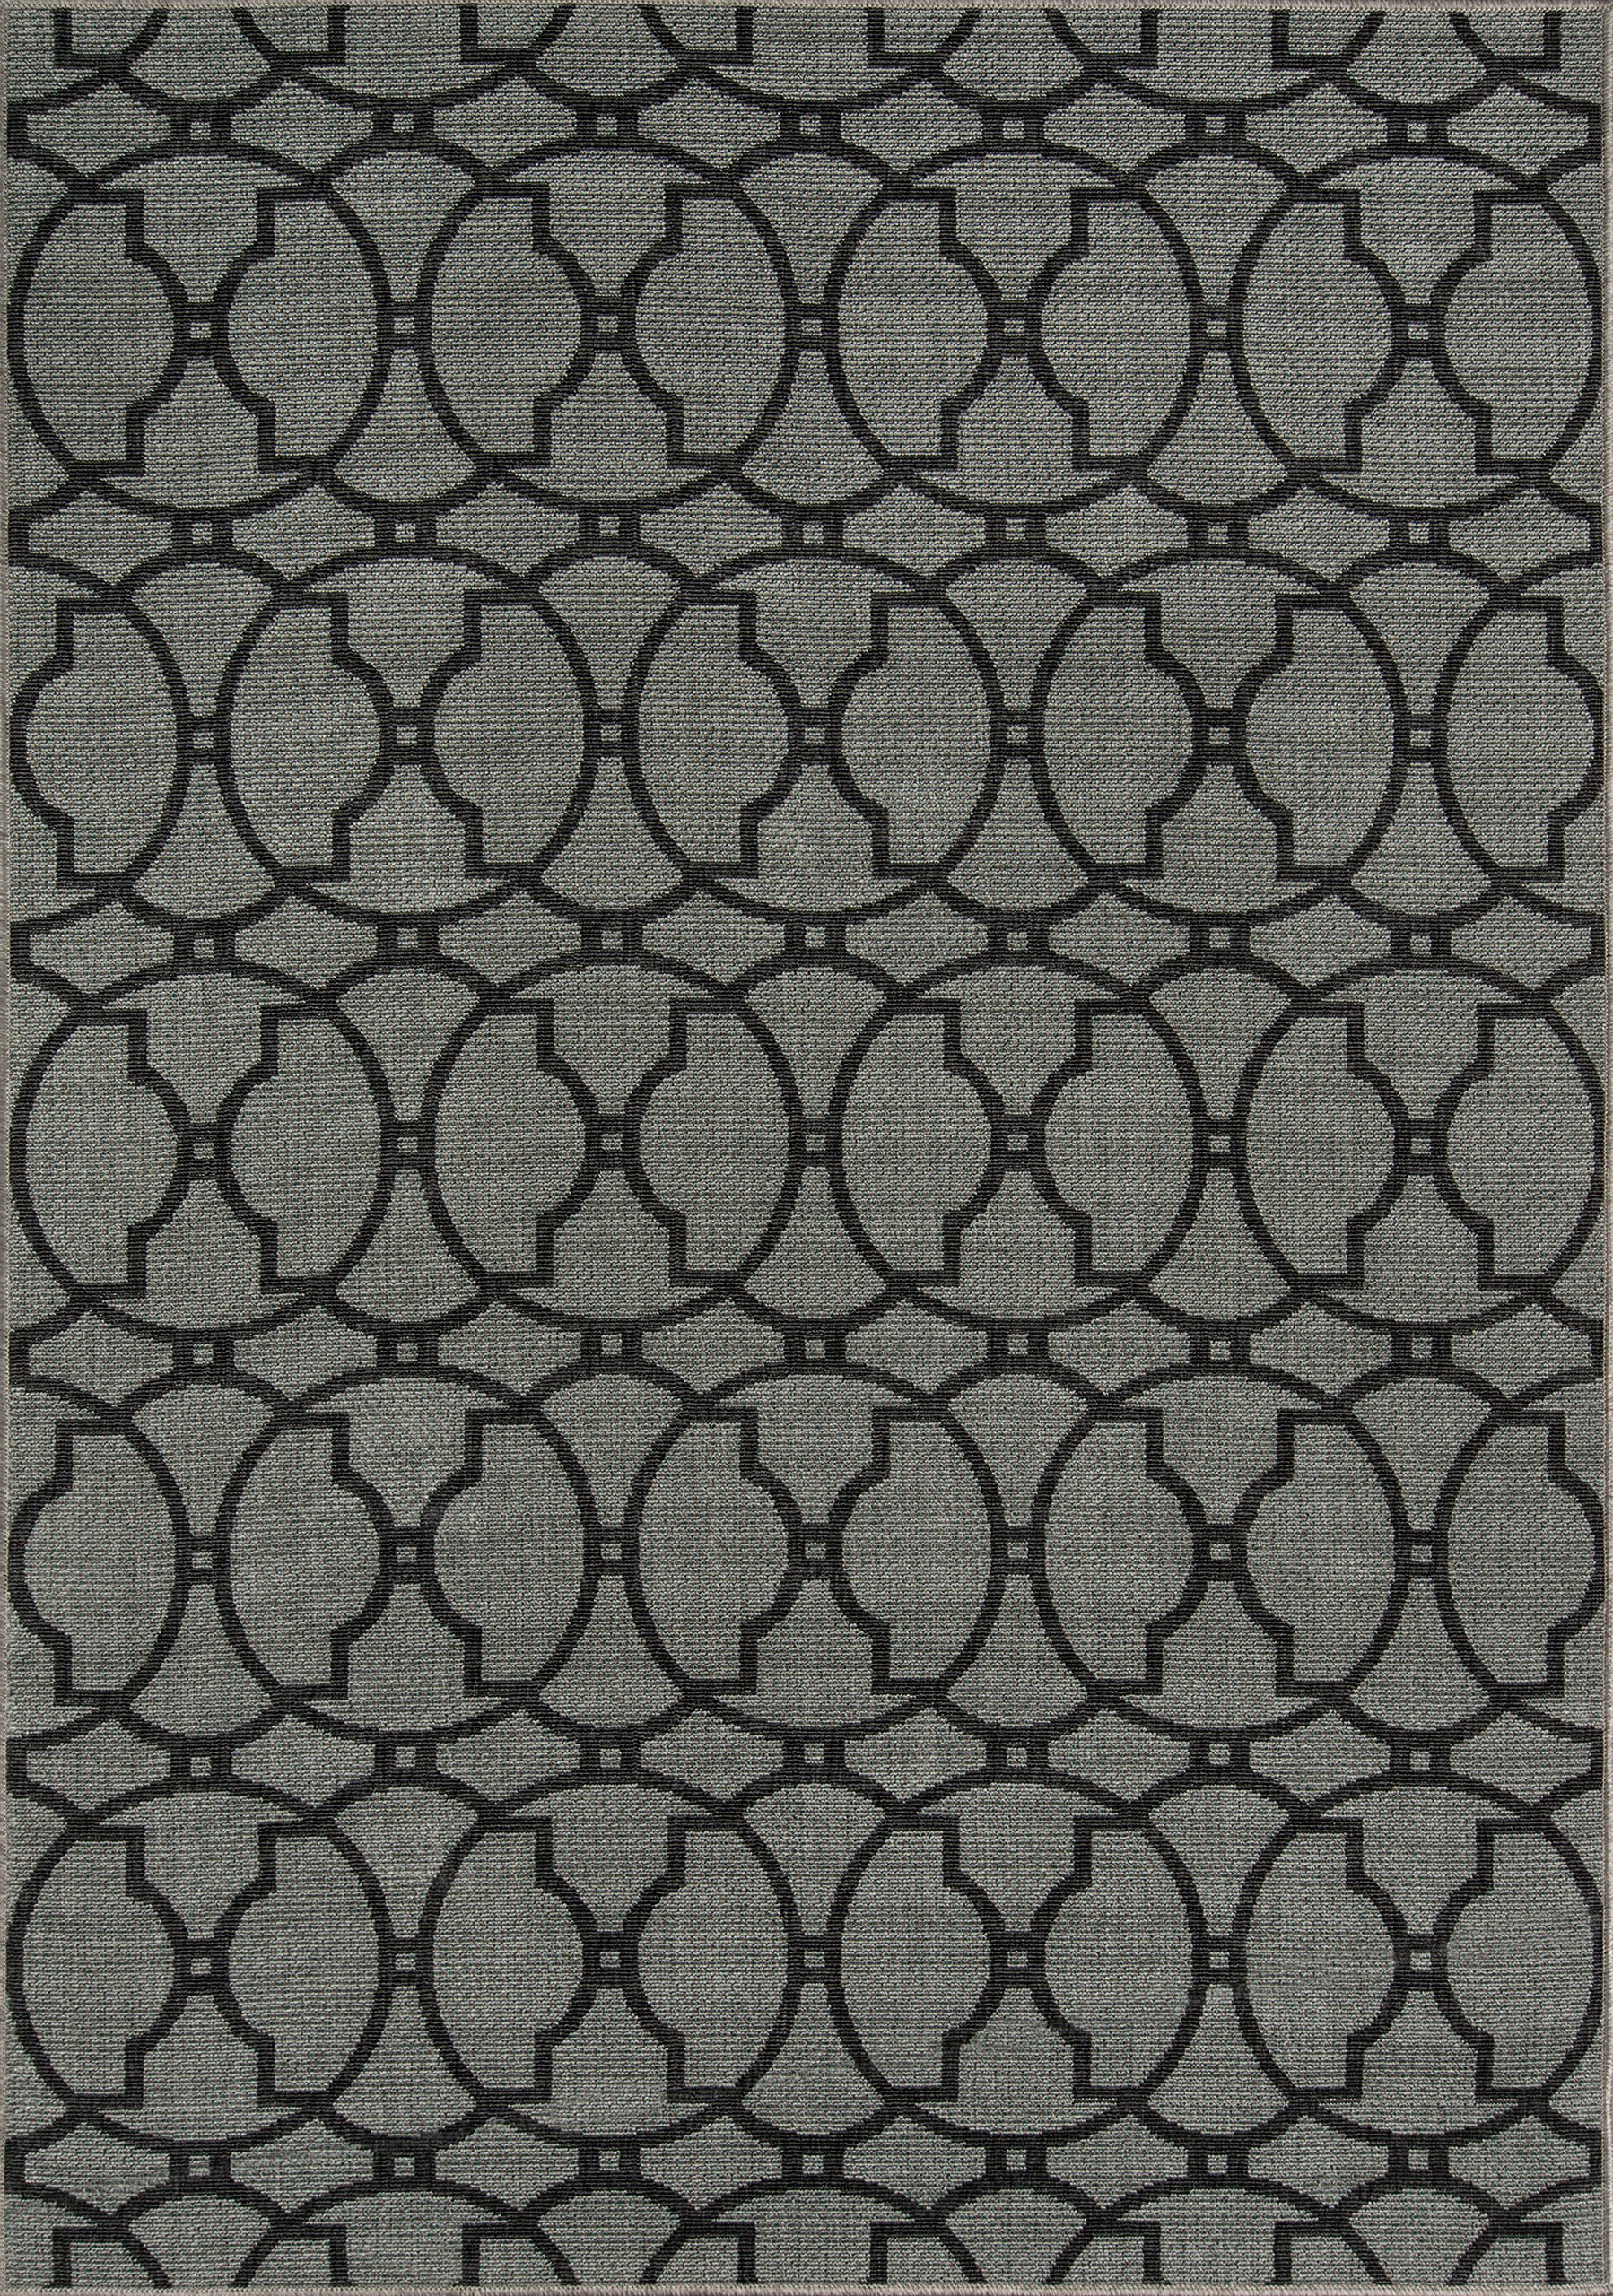 Nolita Rugs Renato Polypropylene Charcoal Indoor/Outdoor Rug 6'7'' X 9'6'' by Nolita Rugs